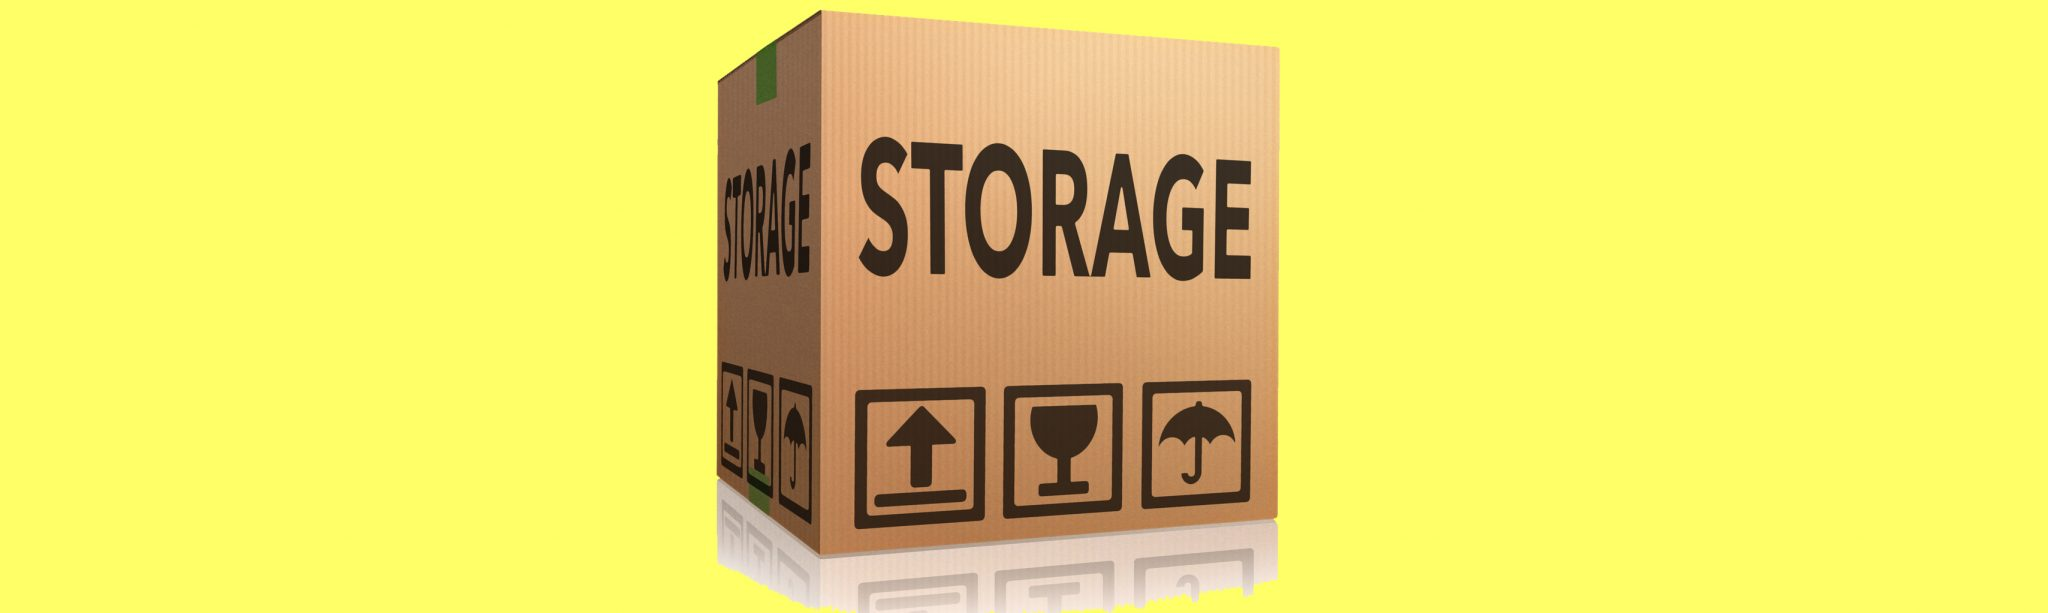 Windows 10 storage spaces — A comprehensive guide